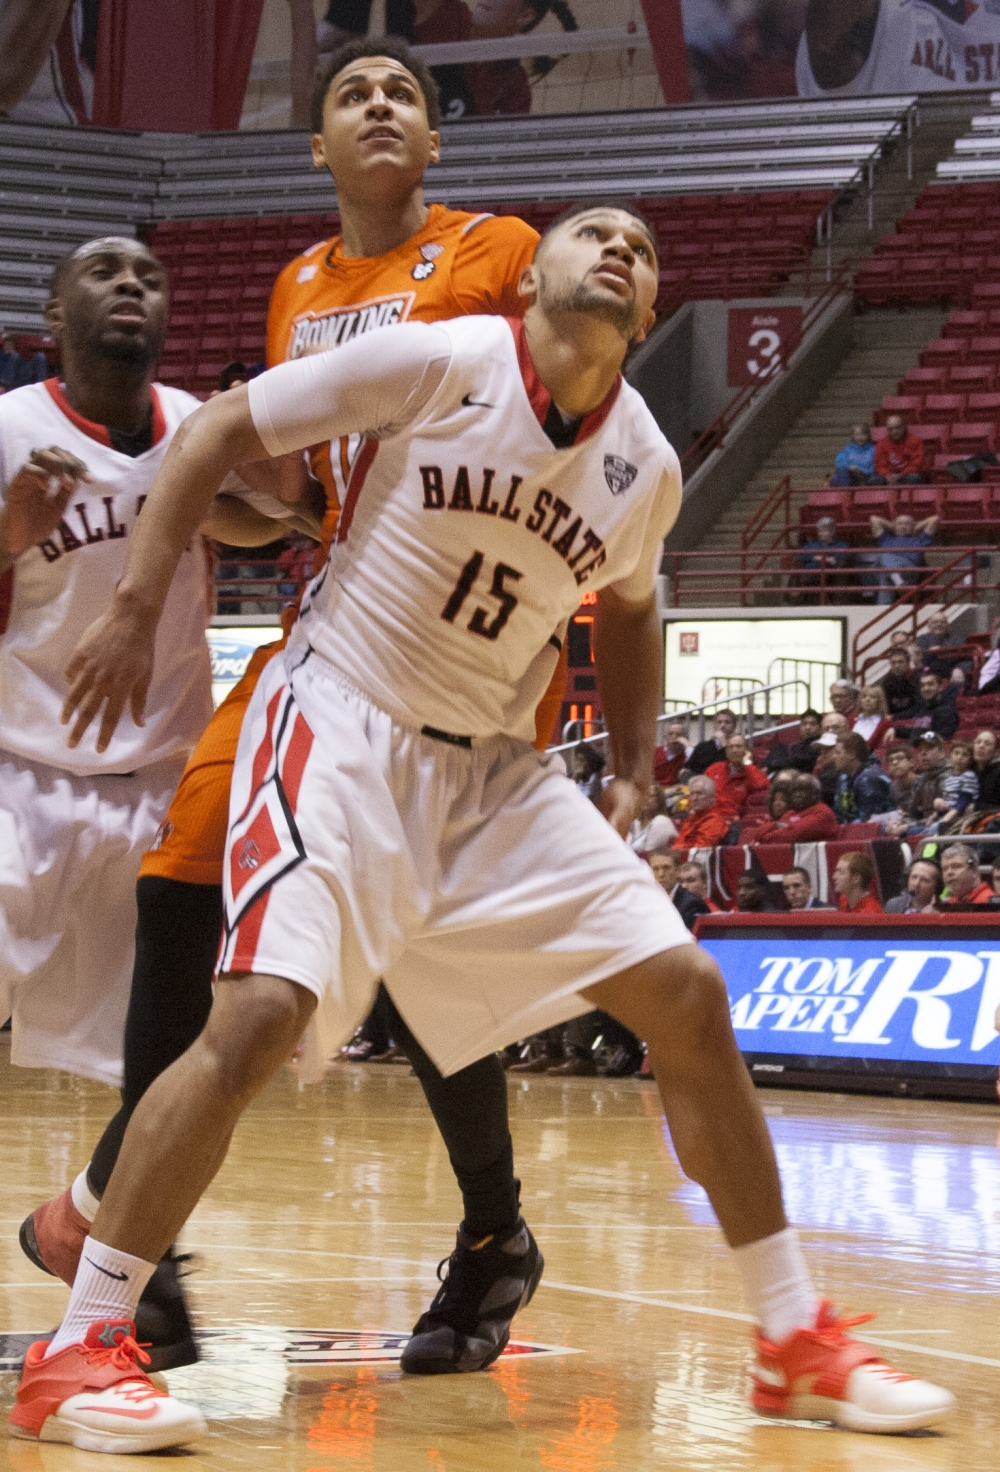 Ball State defeats Longwood in @EKUHoops Classic | Ball State Daily